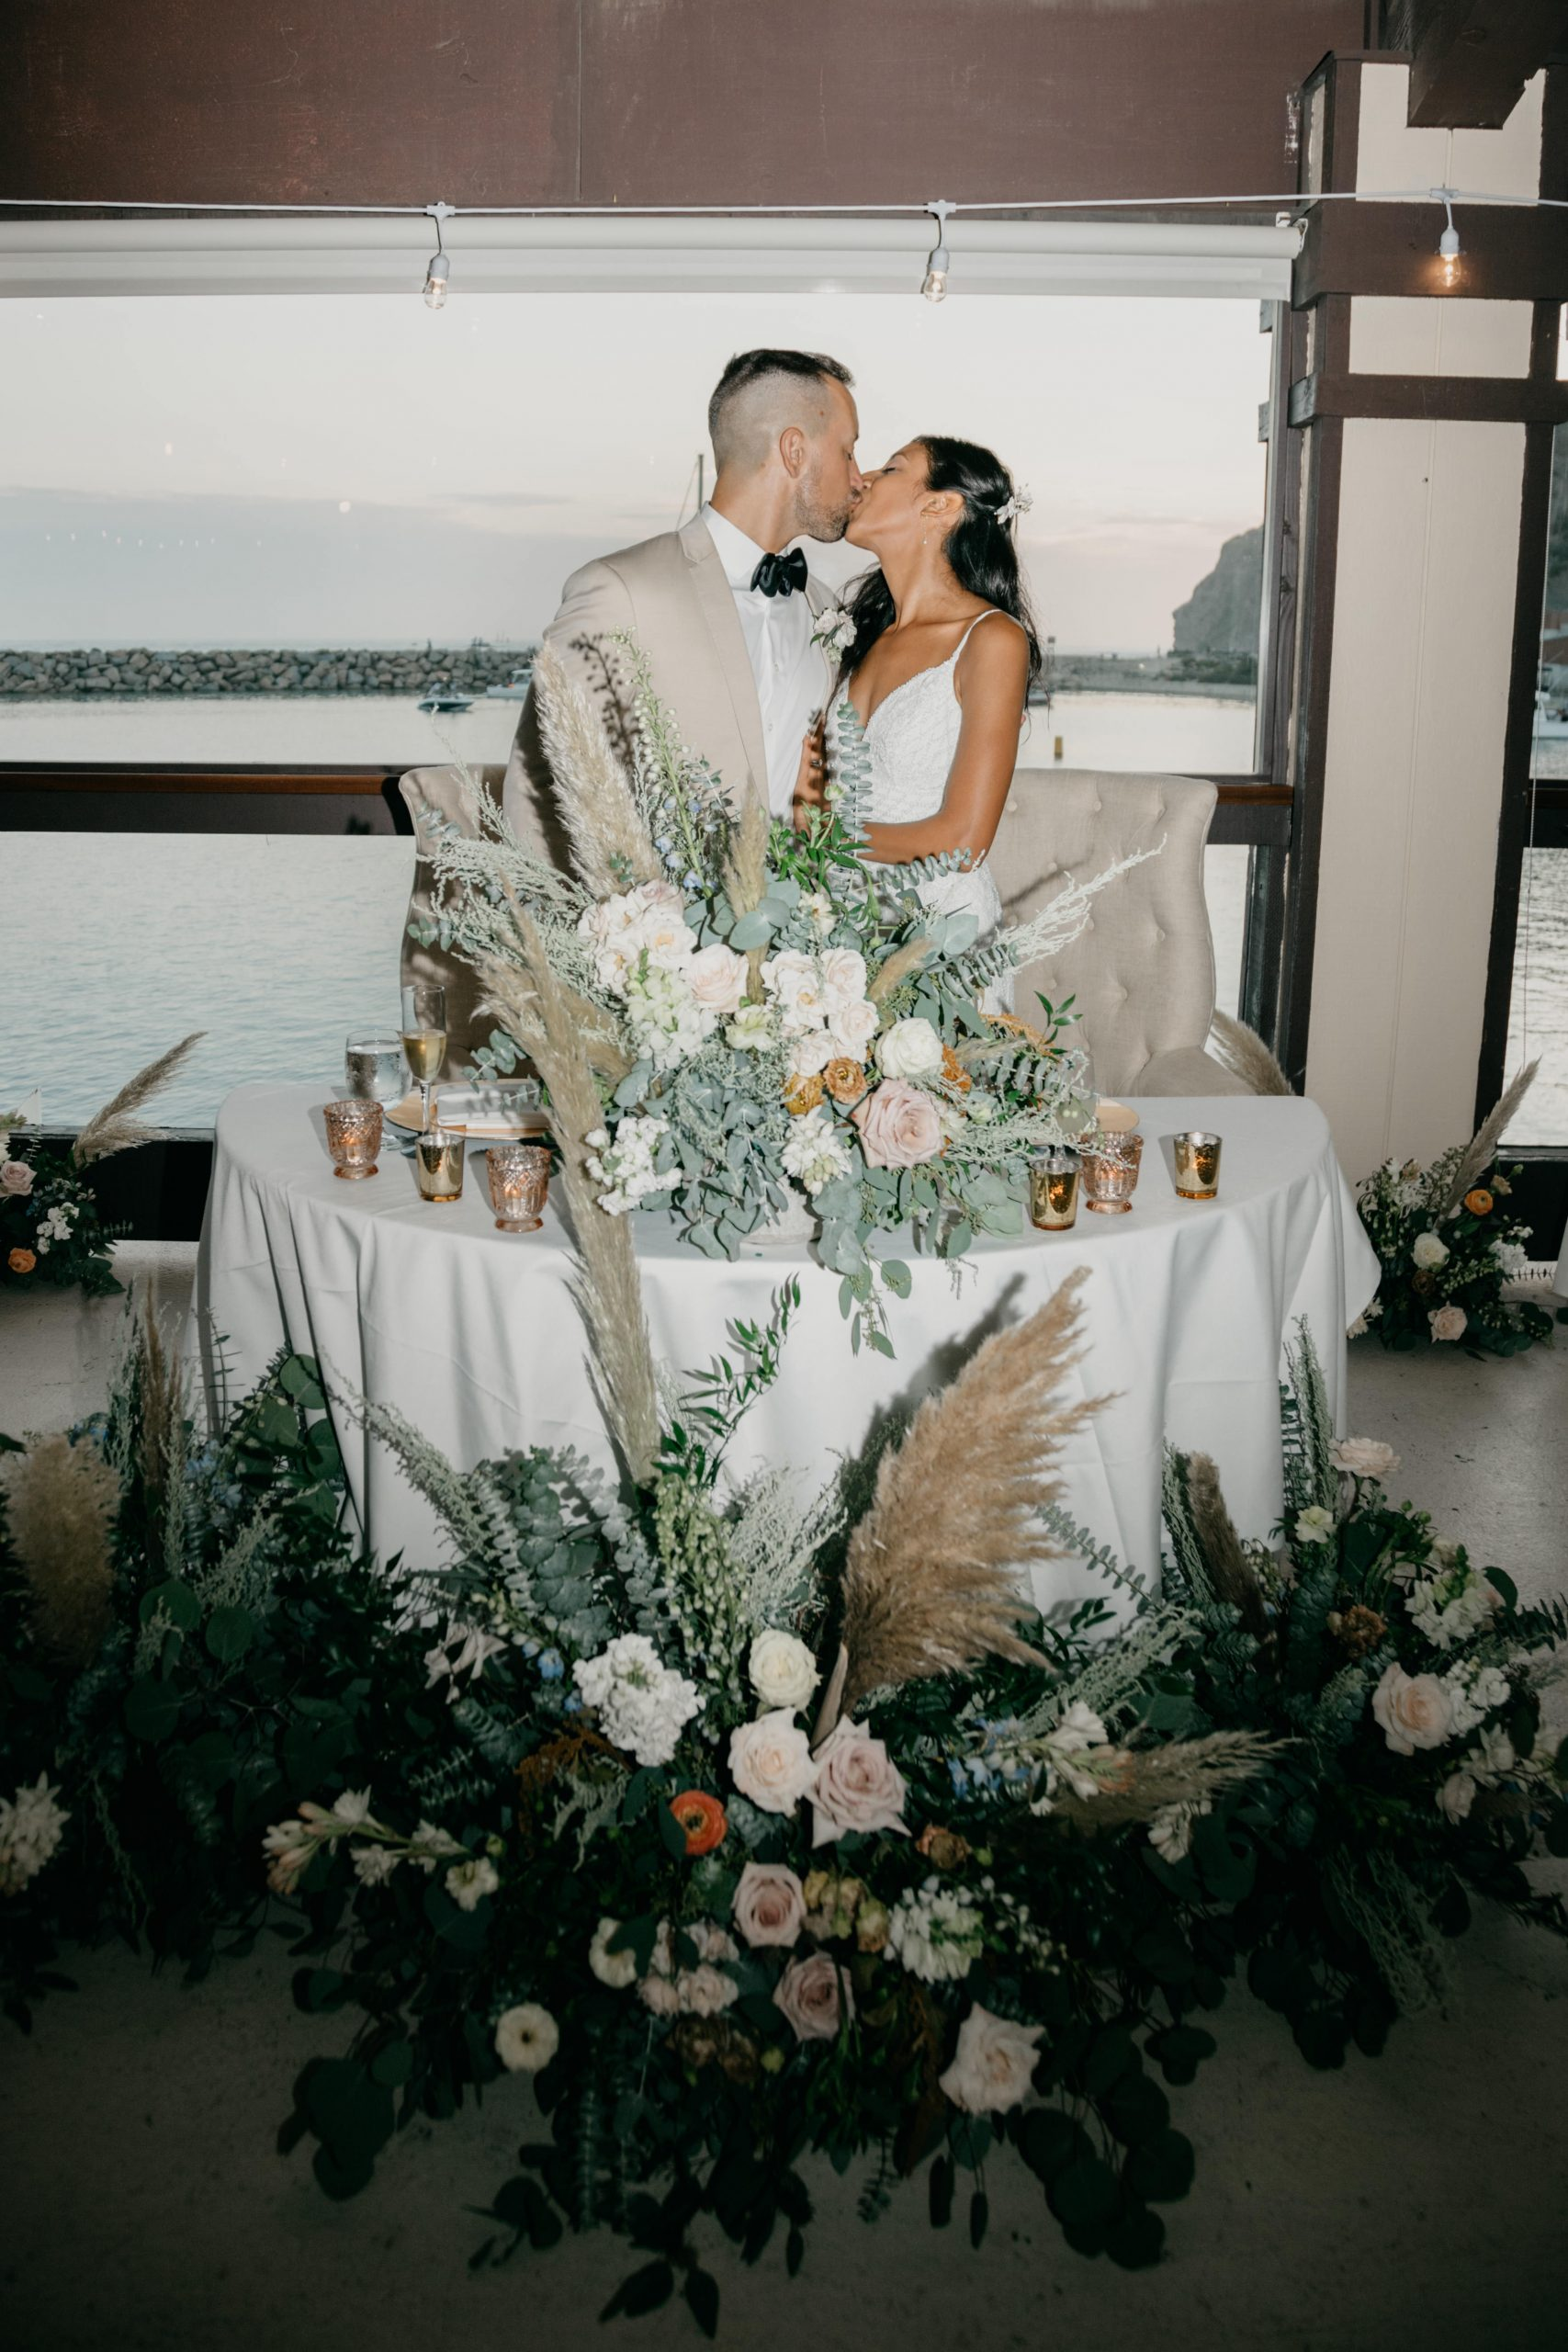 Dana Point Yacht Club Wedding, The Montage Laguna Beach Wedding Bridal Portraits, image by Fatima Elreda Photo